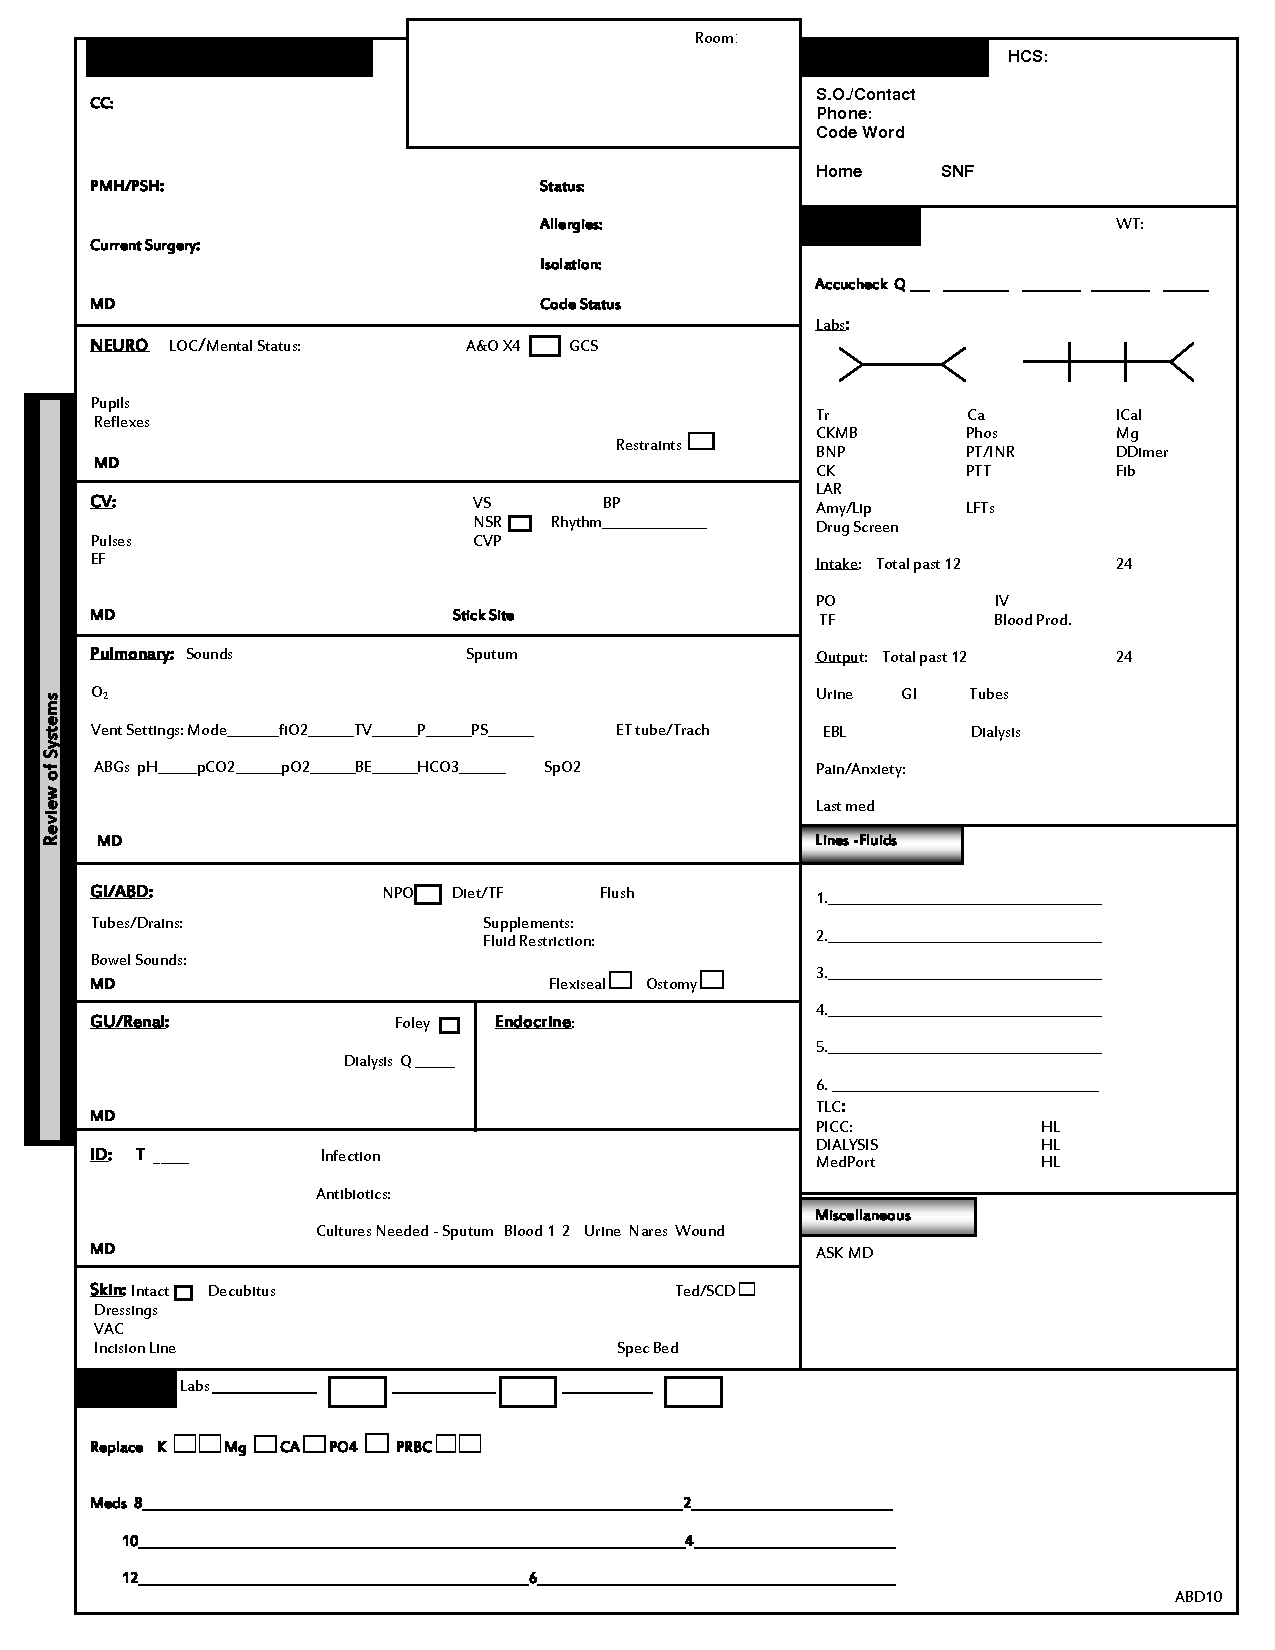 Icu Nurse Report Sheet Template | Nursing | Pinterest | Home ...